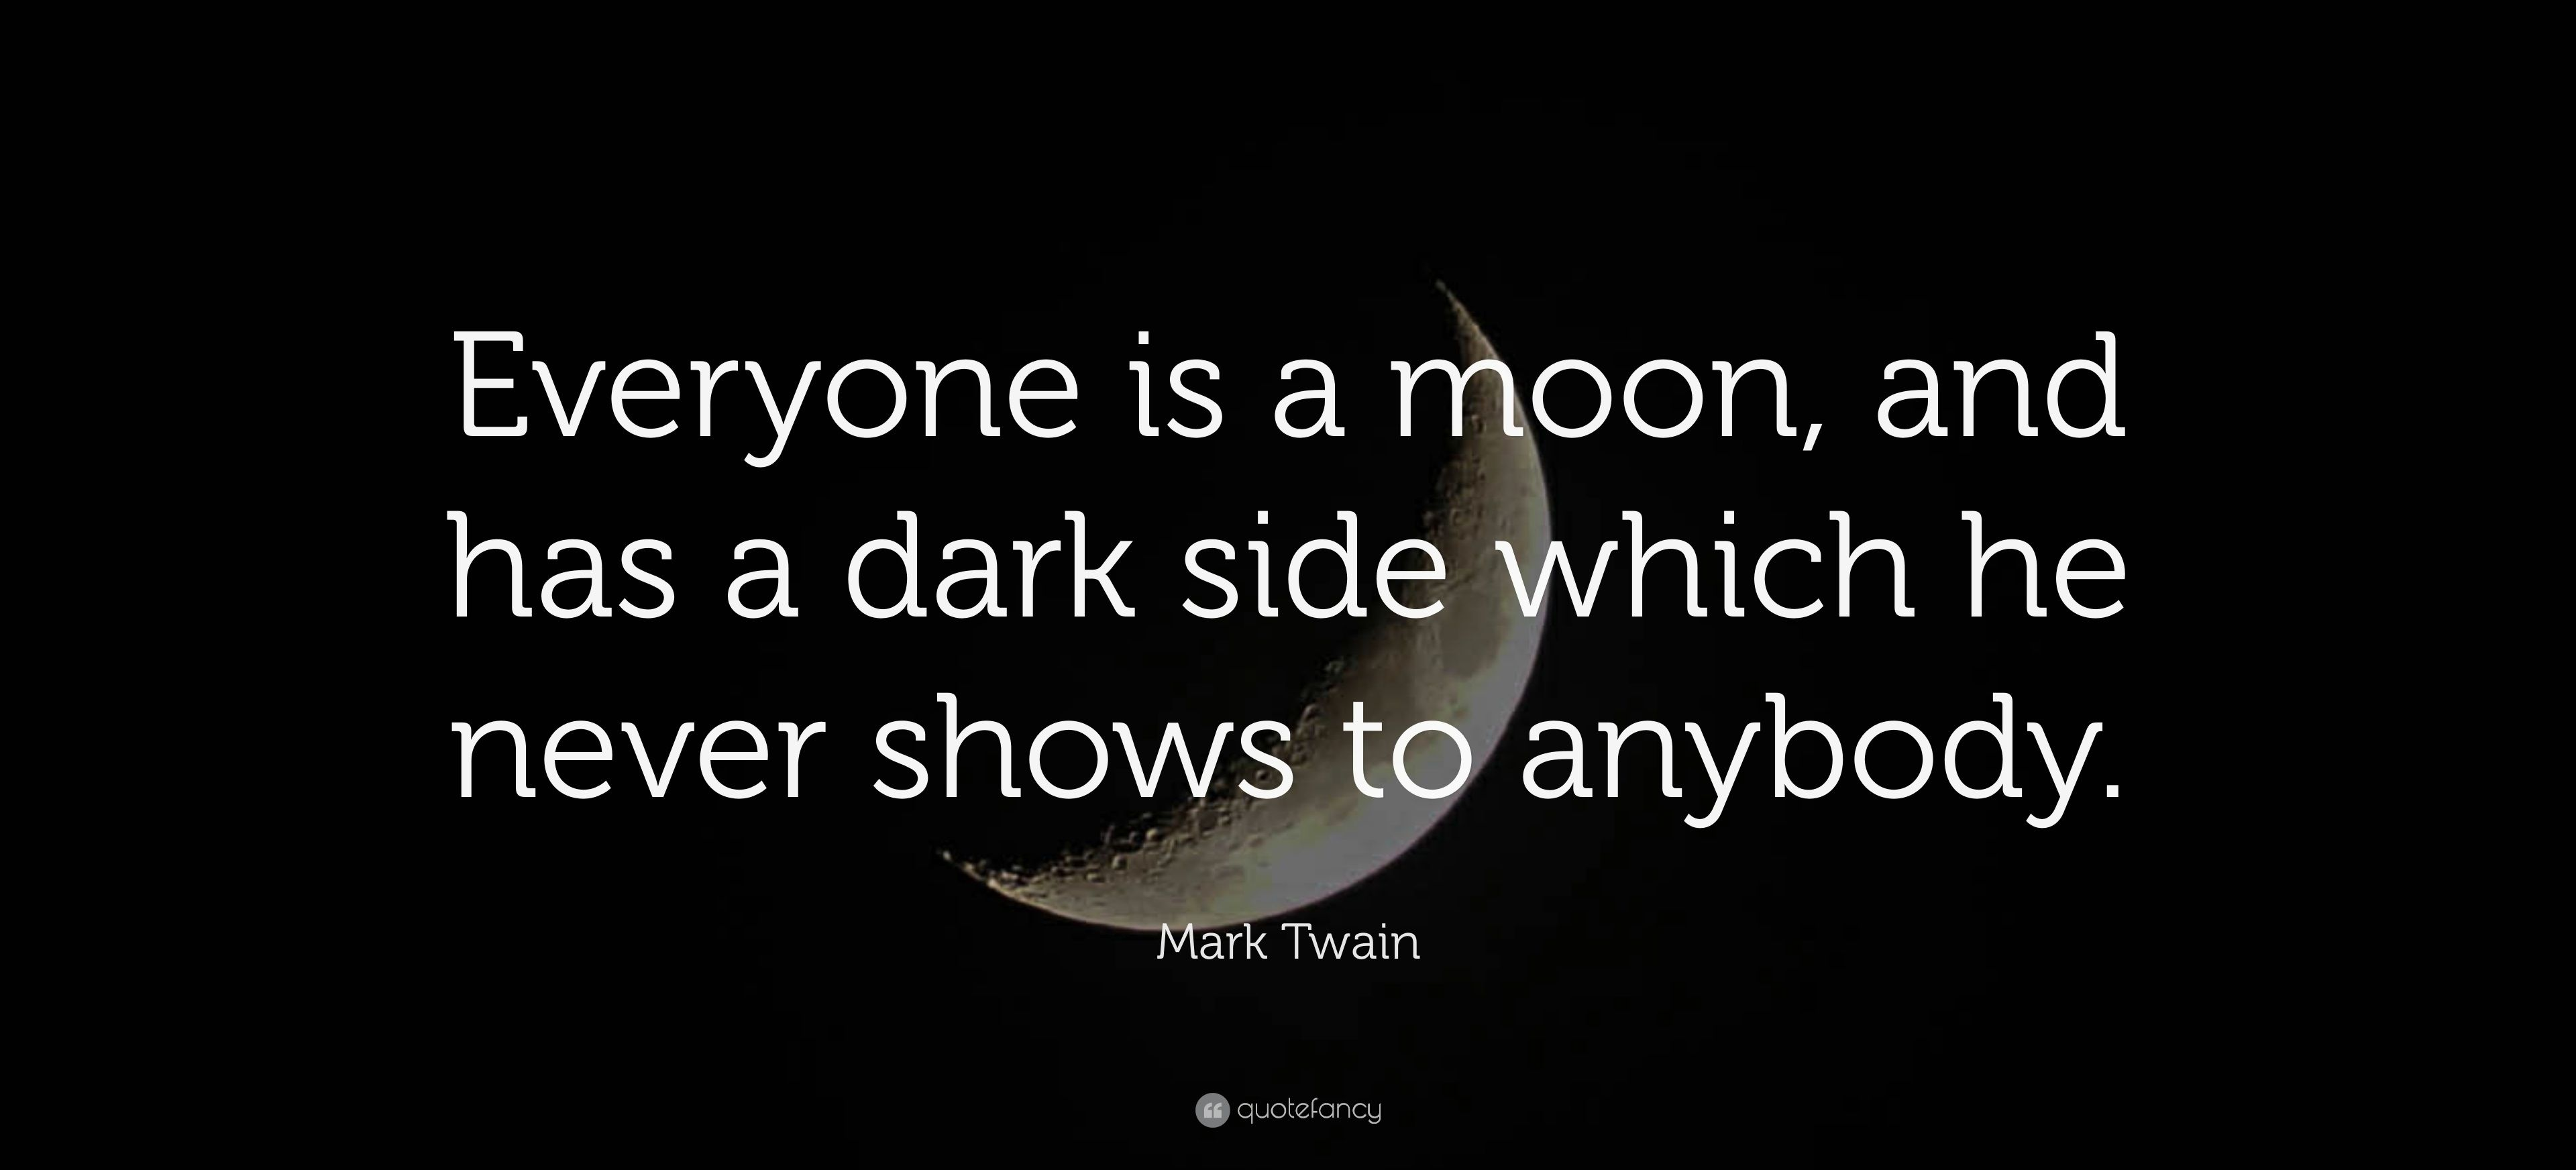 Pin By Shibi On Quotes Mark Twain Quotes Most Romantic Quotes Moon Quotes